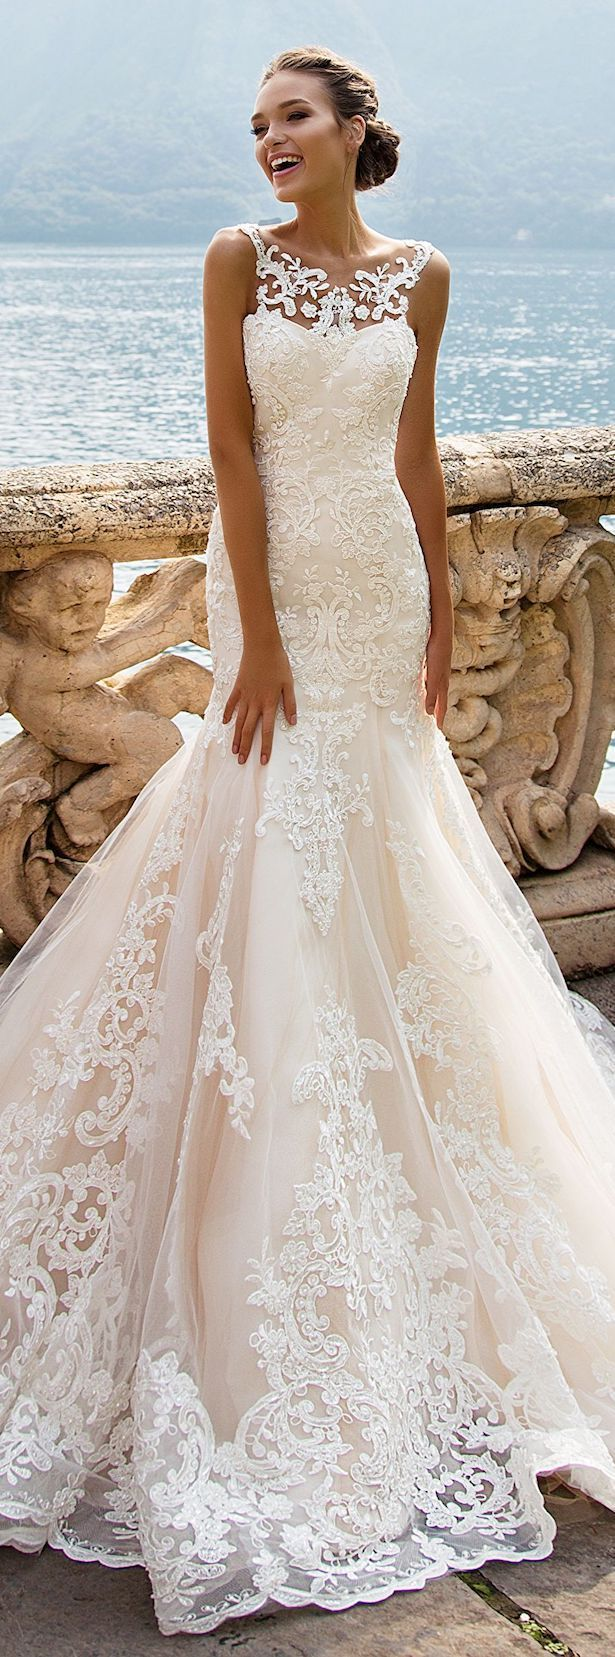 Wedding Dress by Milla Nova White Desire 2017 Bridal Collection - Amalia